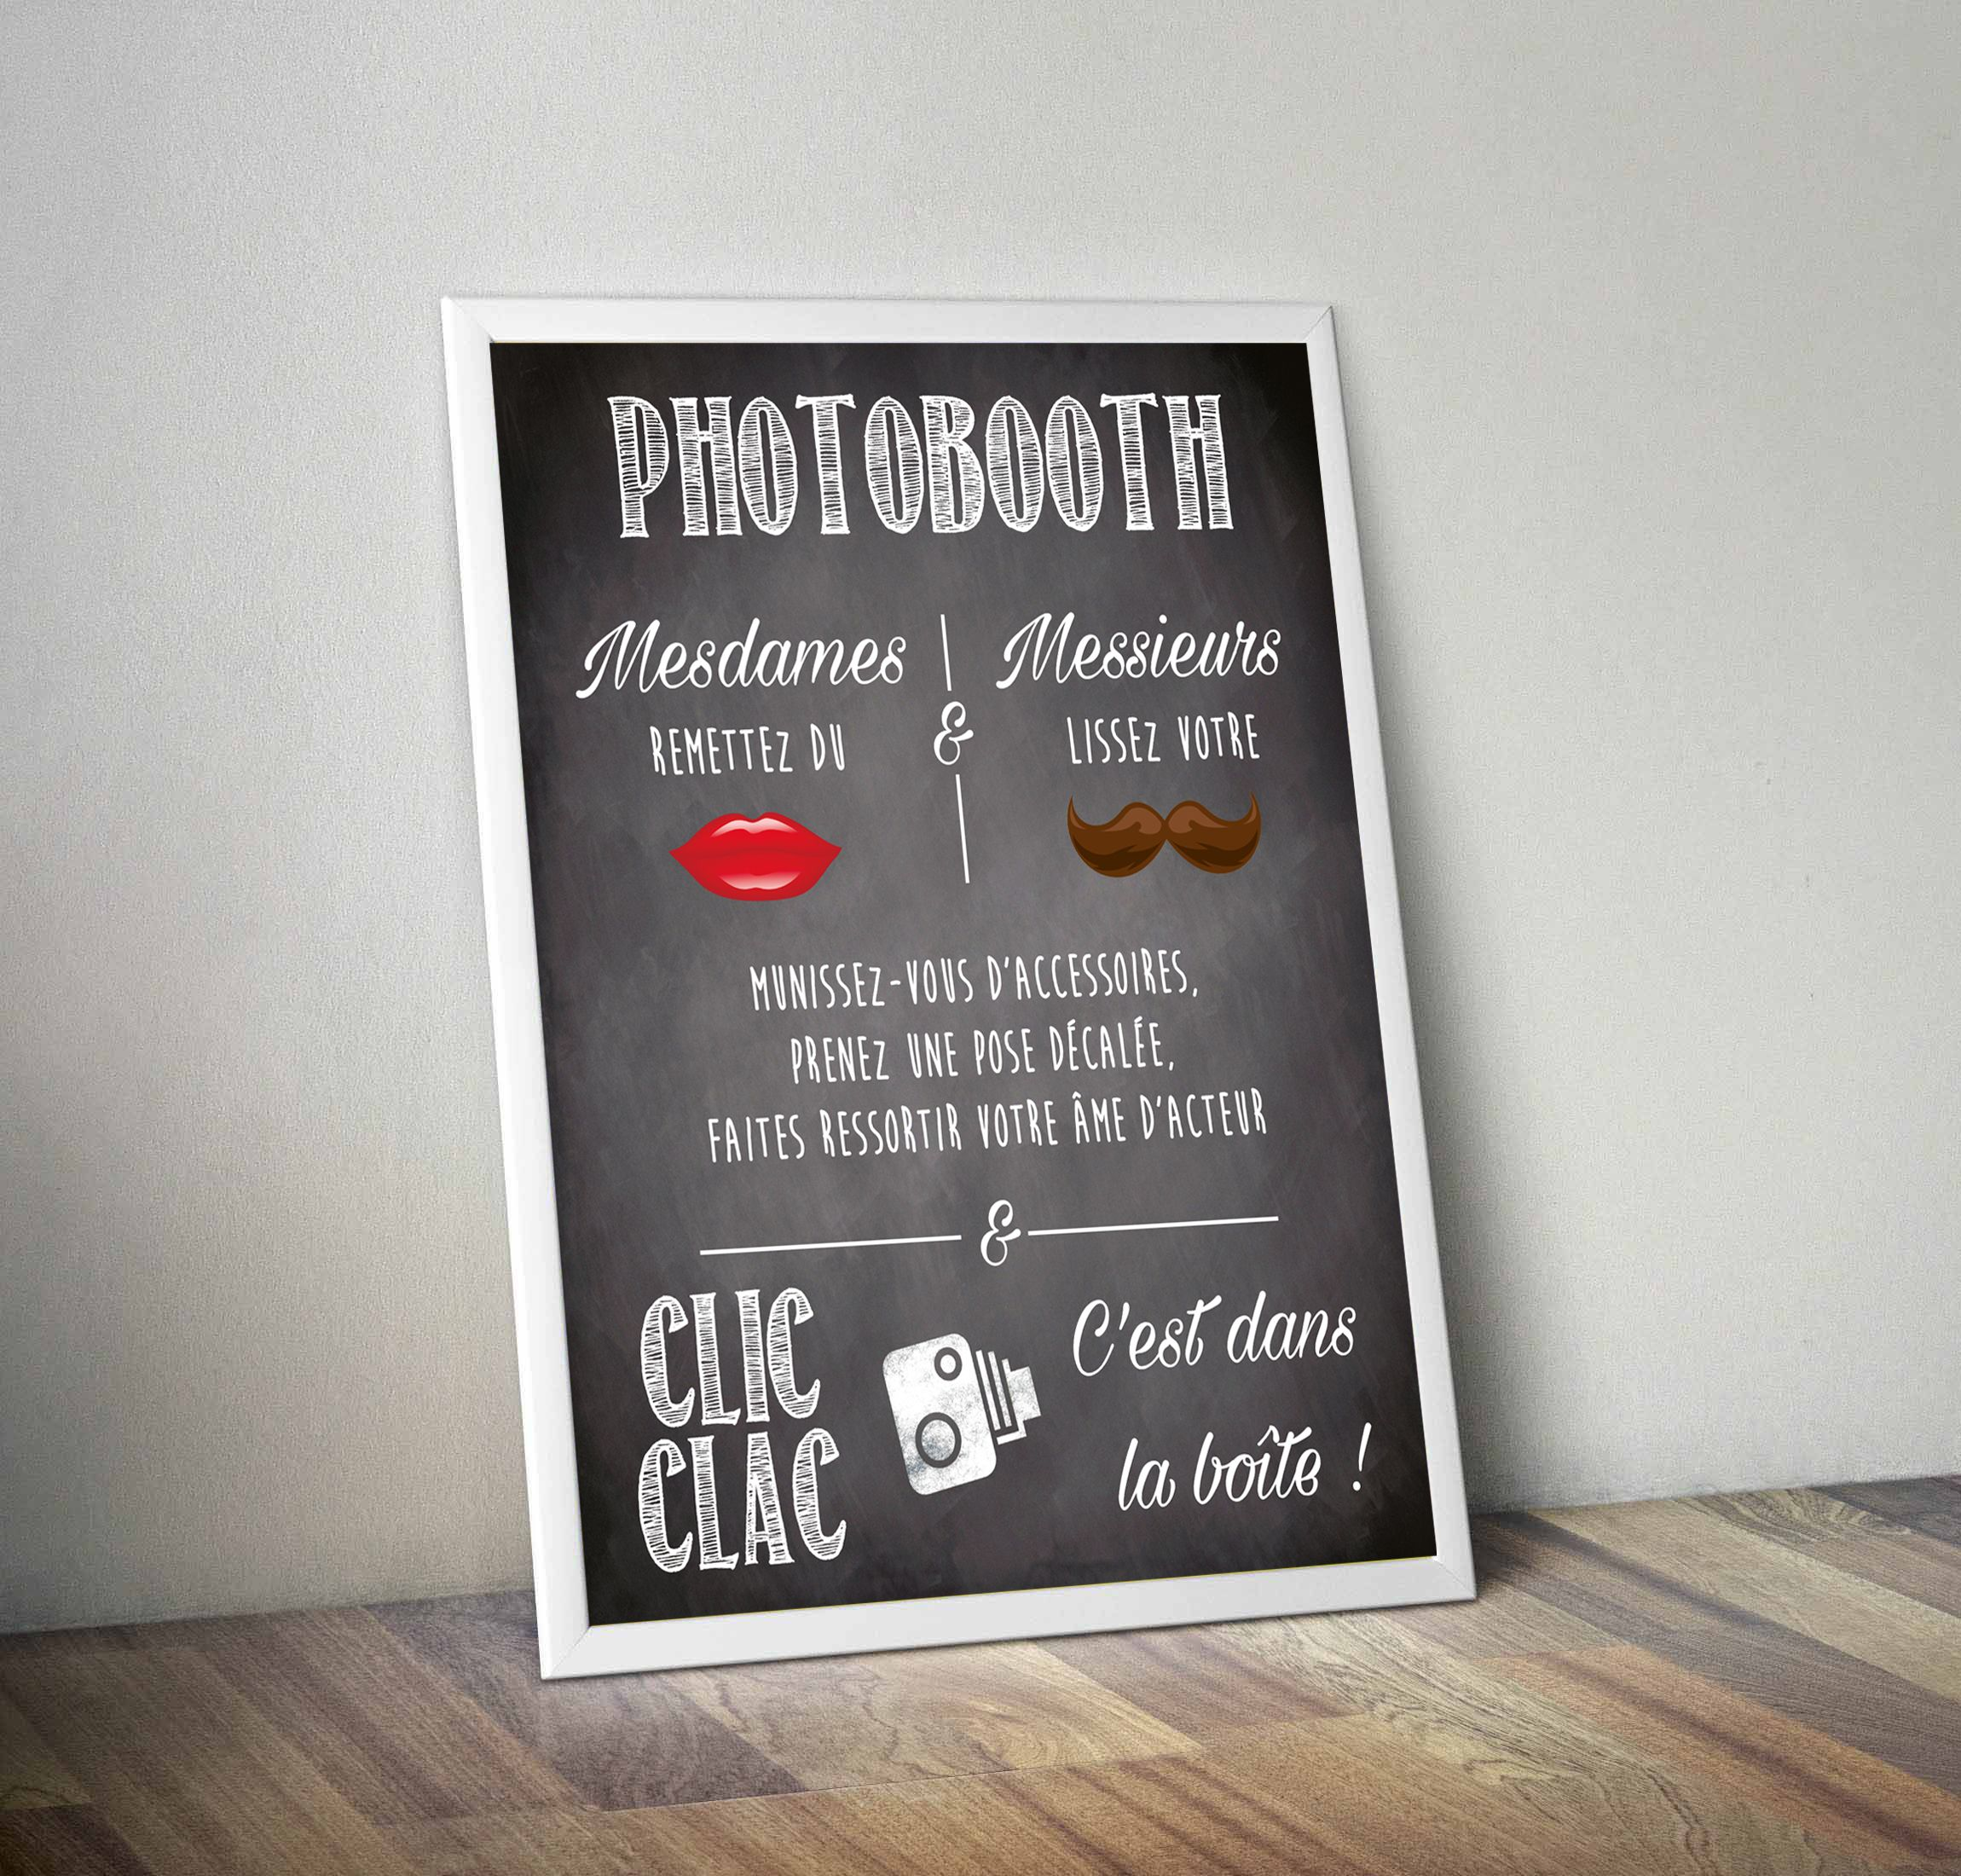 affiche pancarte photobooth 40x50 cm photocall photobooth mode d 39 emploi pinterest. Black Bedroom Furniture Sets. Home Design Ideas